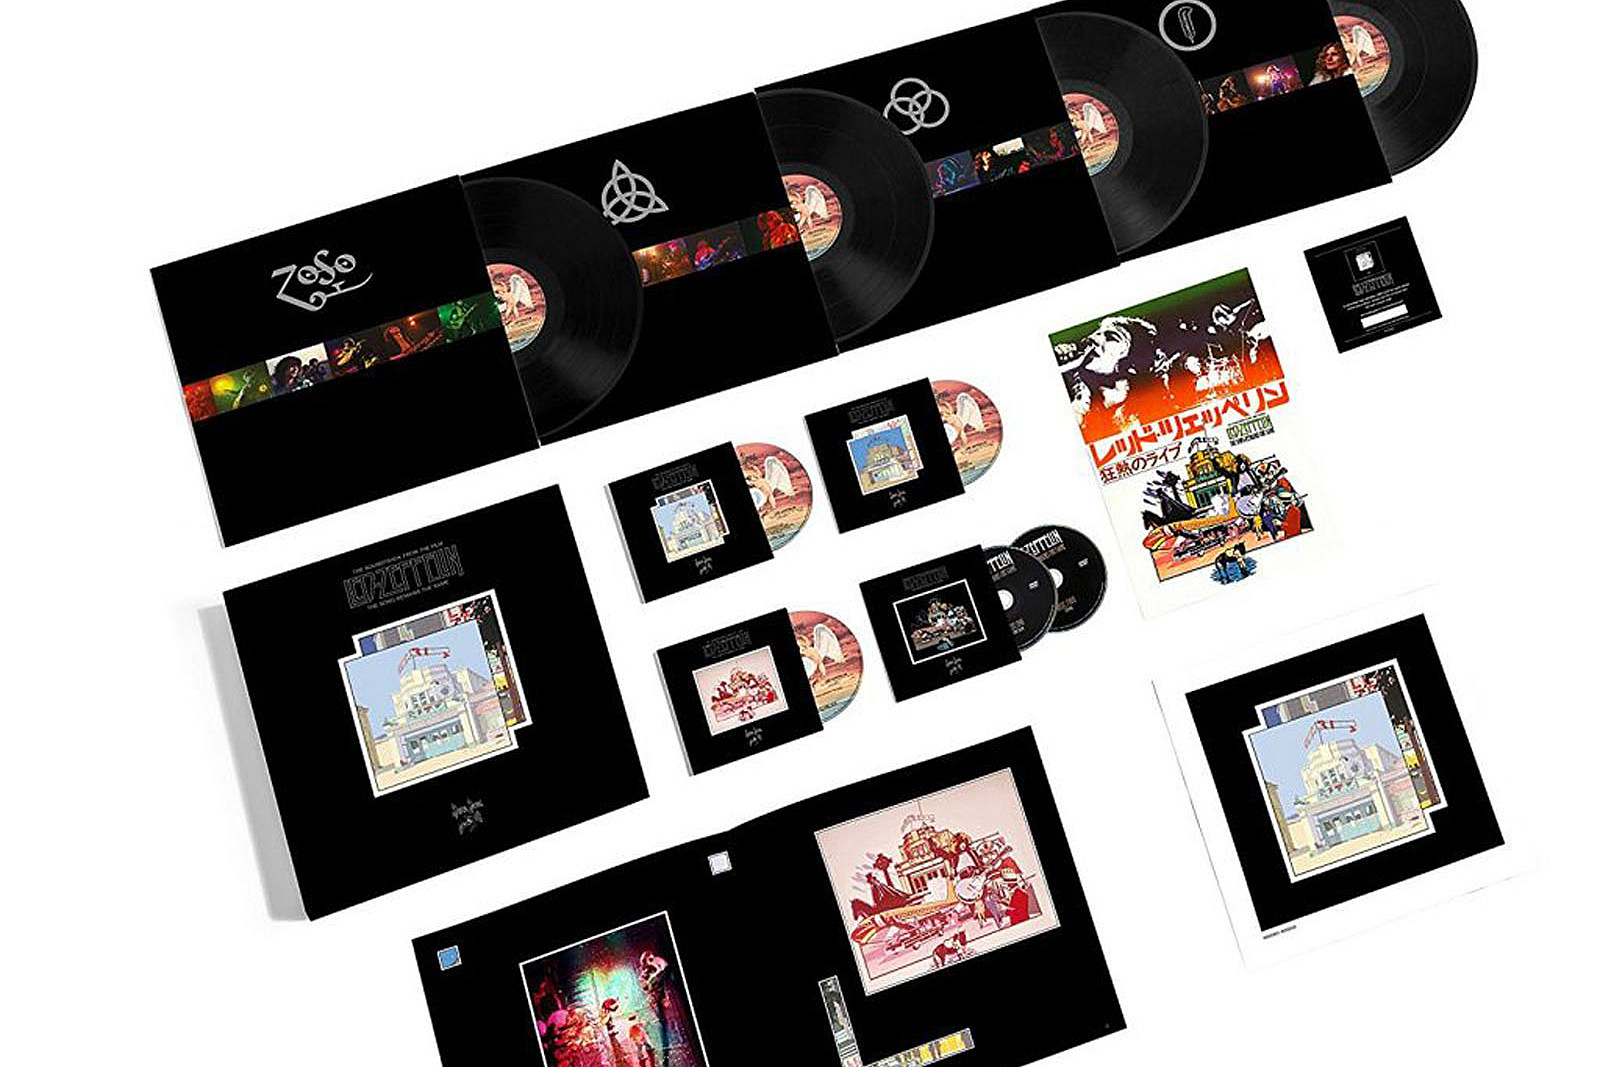 Led Zeppelin Announce Massive 'The Song Remains the Same' Box Set